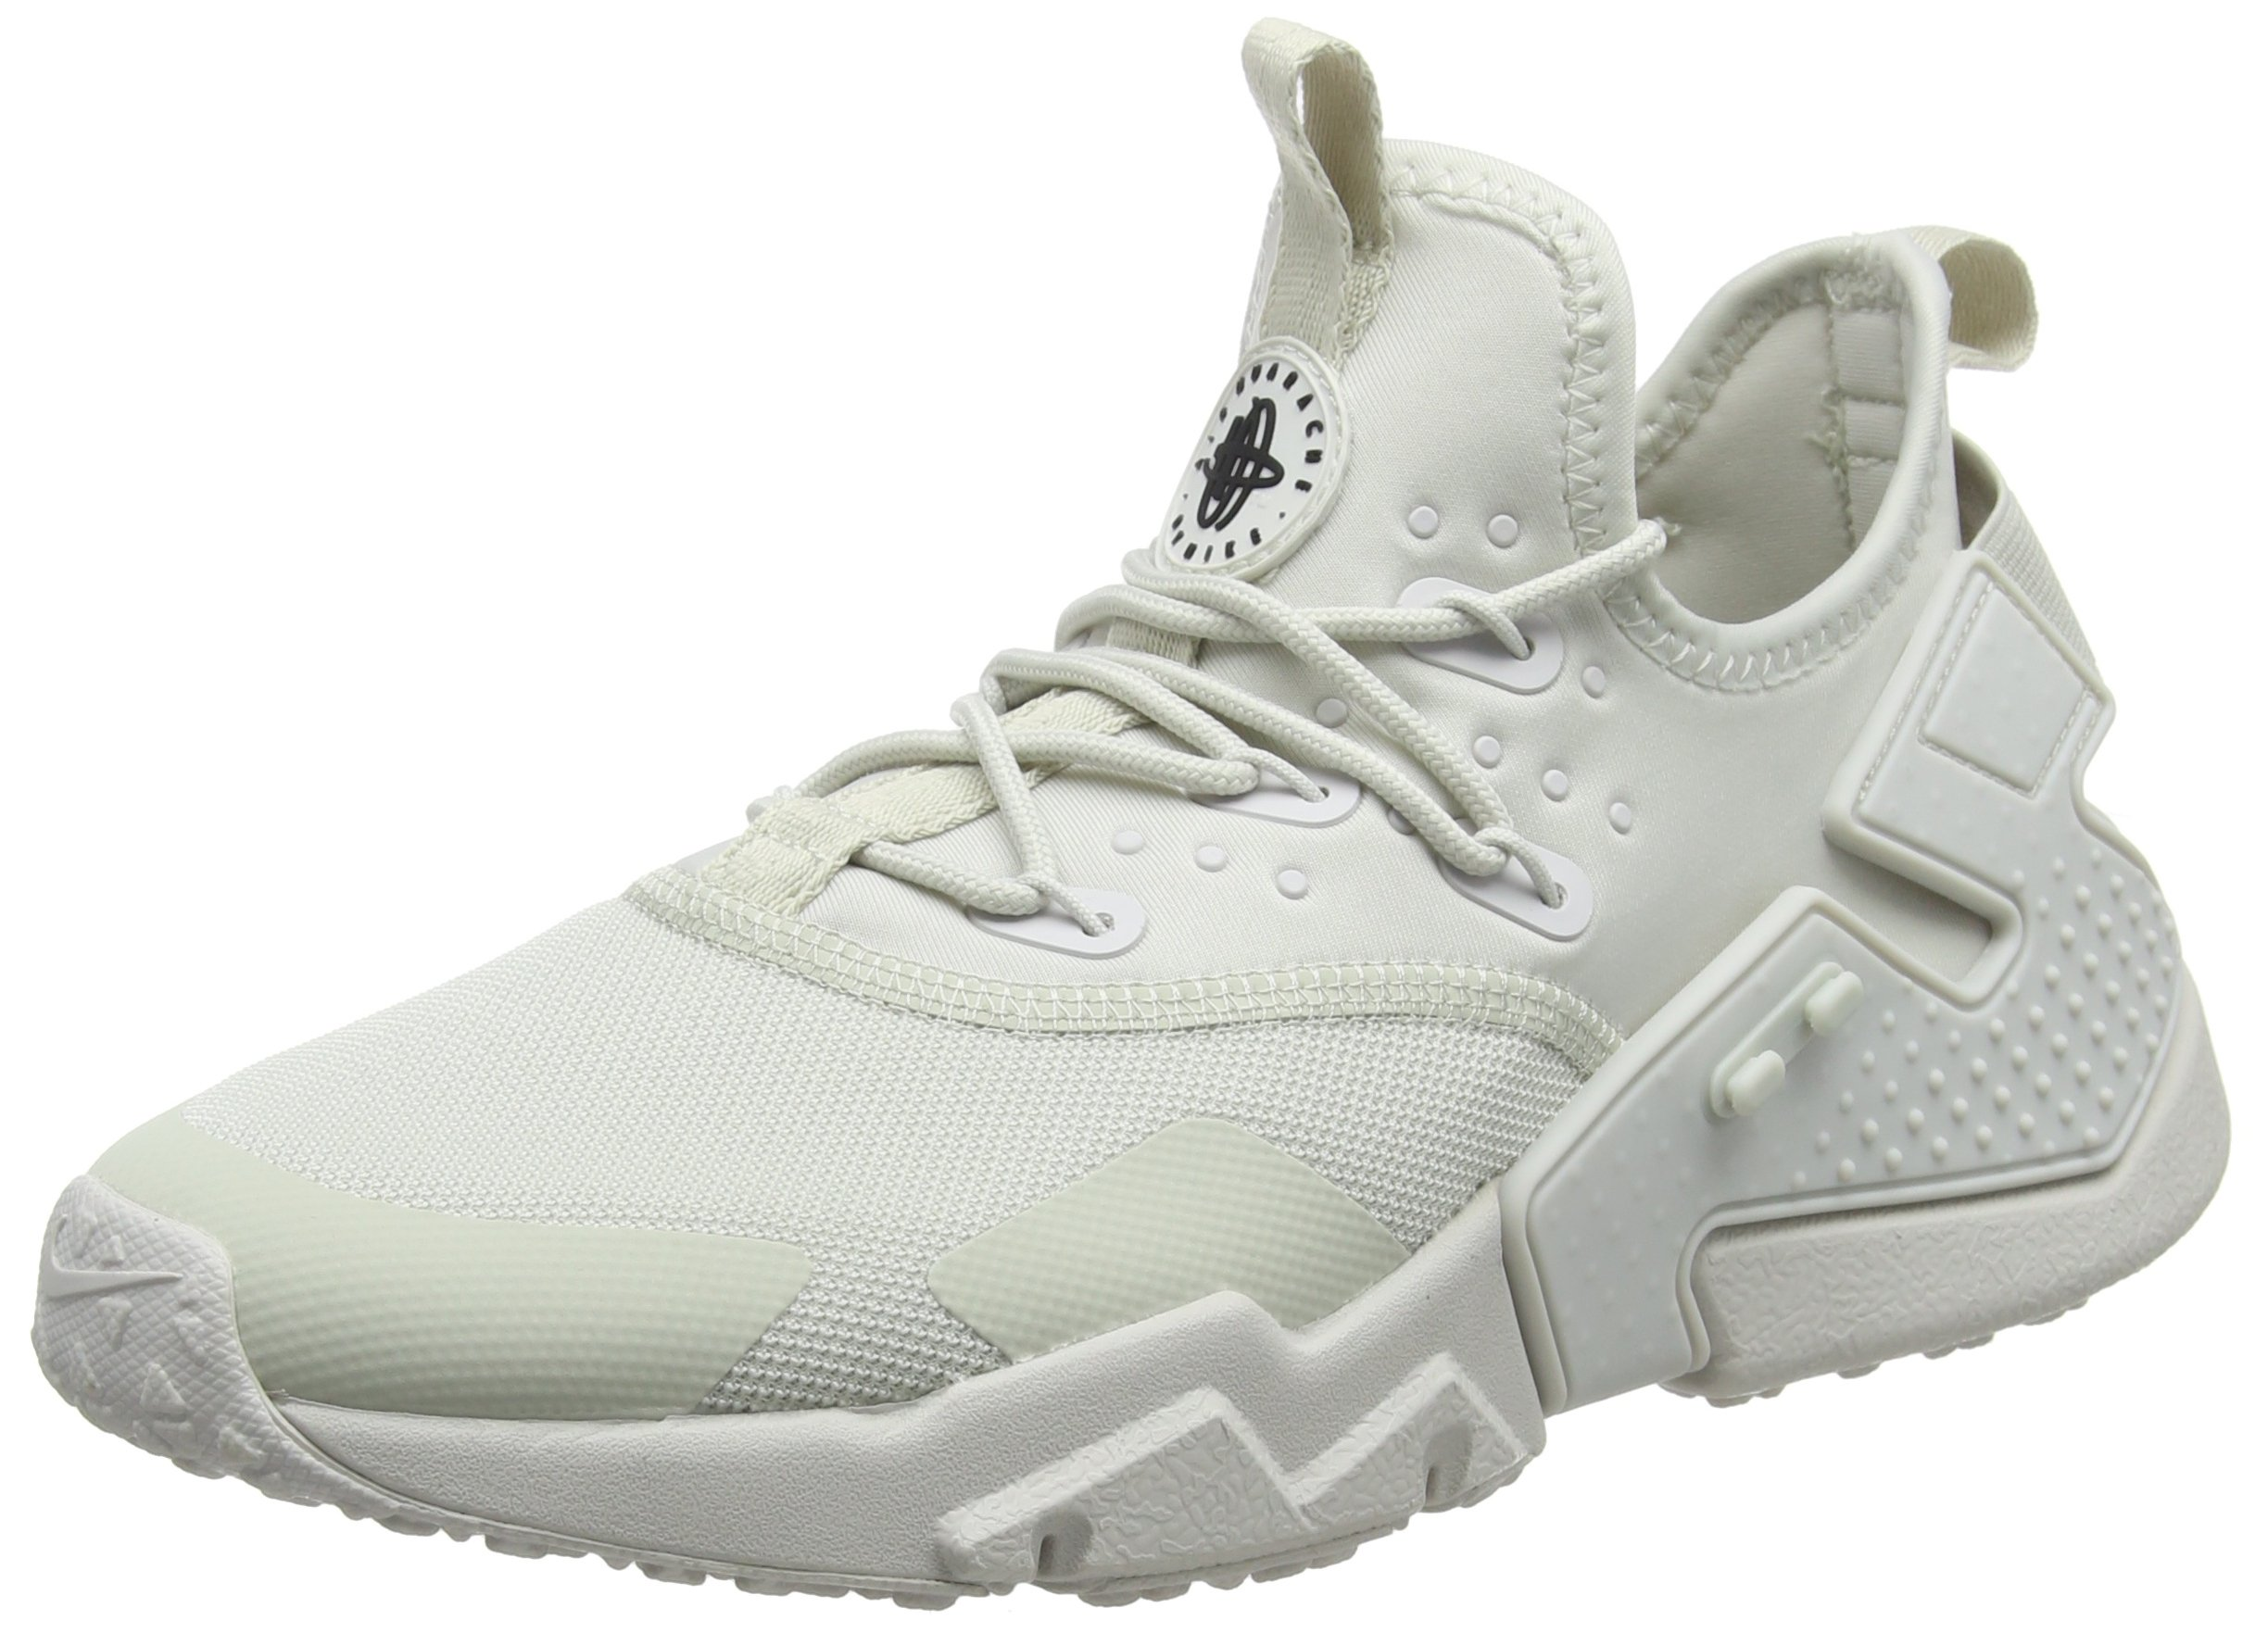 promo code d2b2c 9efa7 Galleon - NIKE Air Huarache Drift